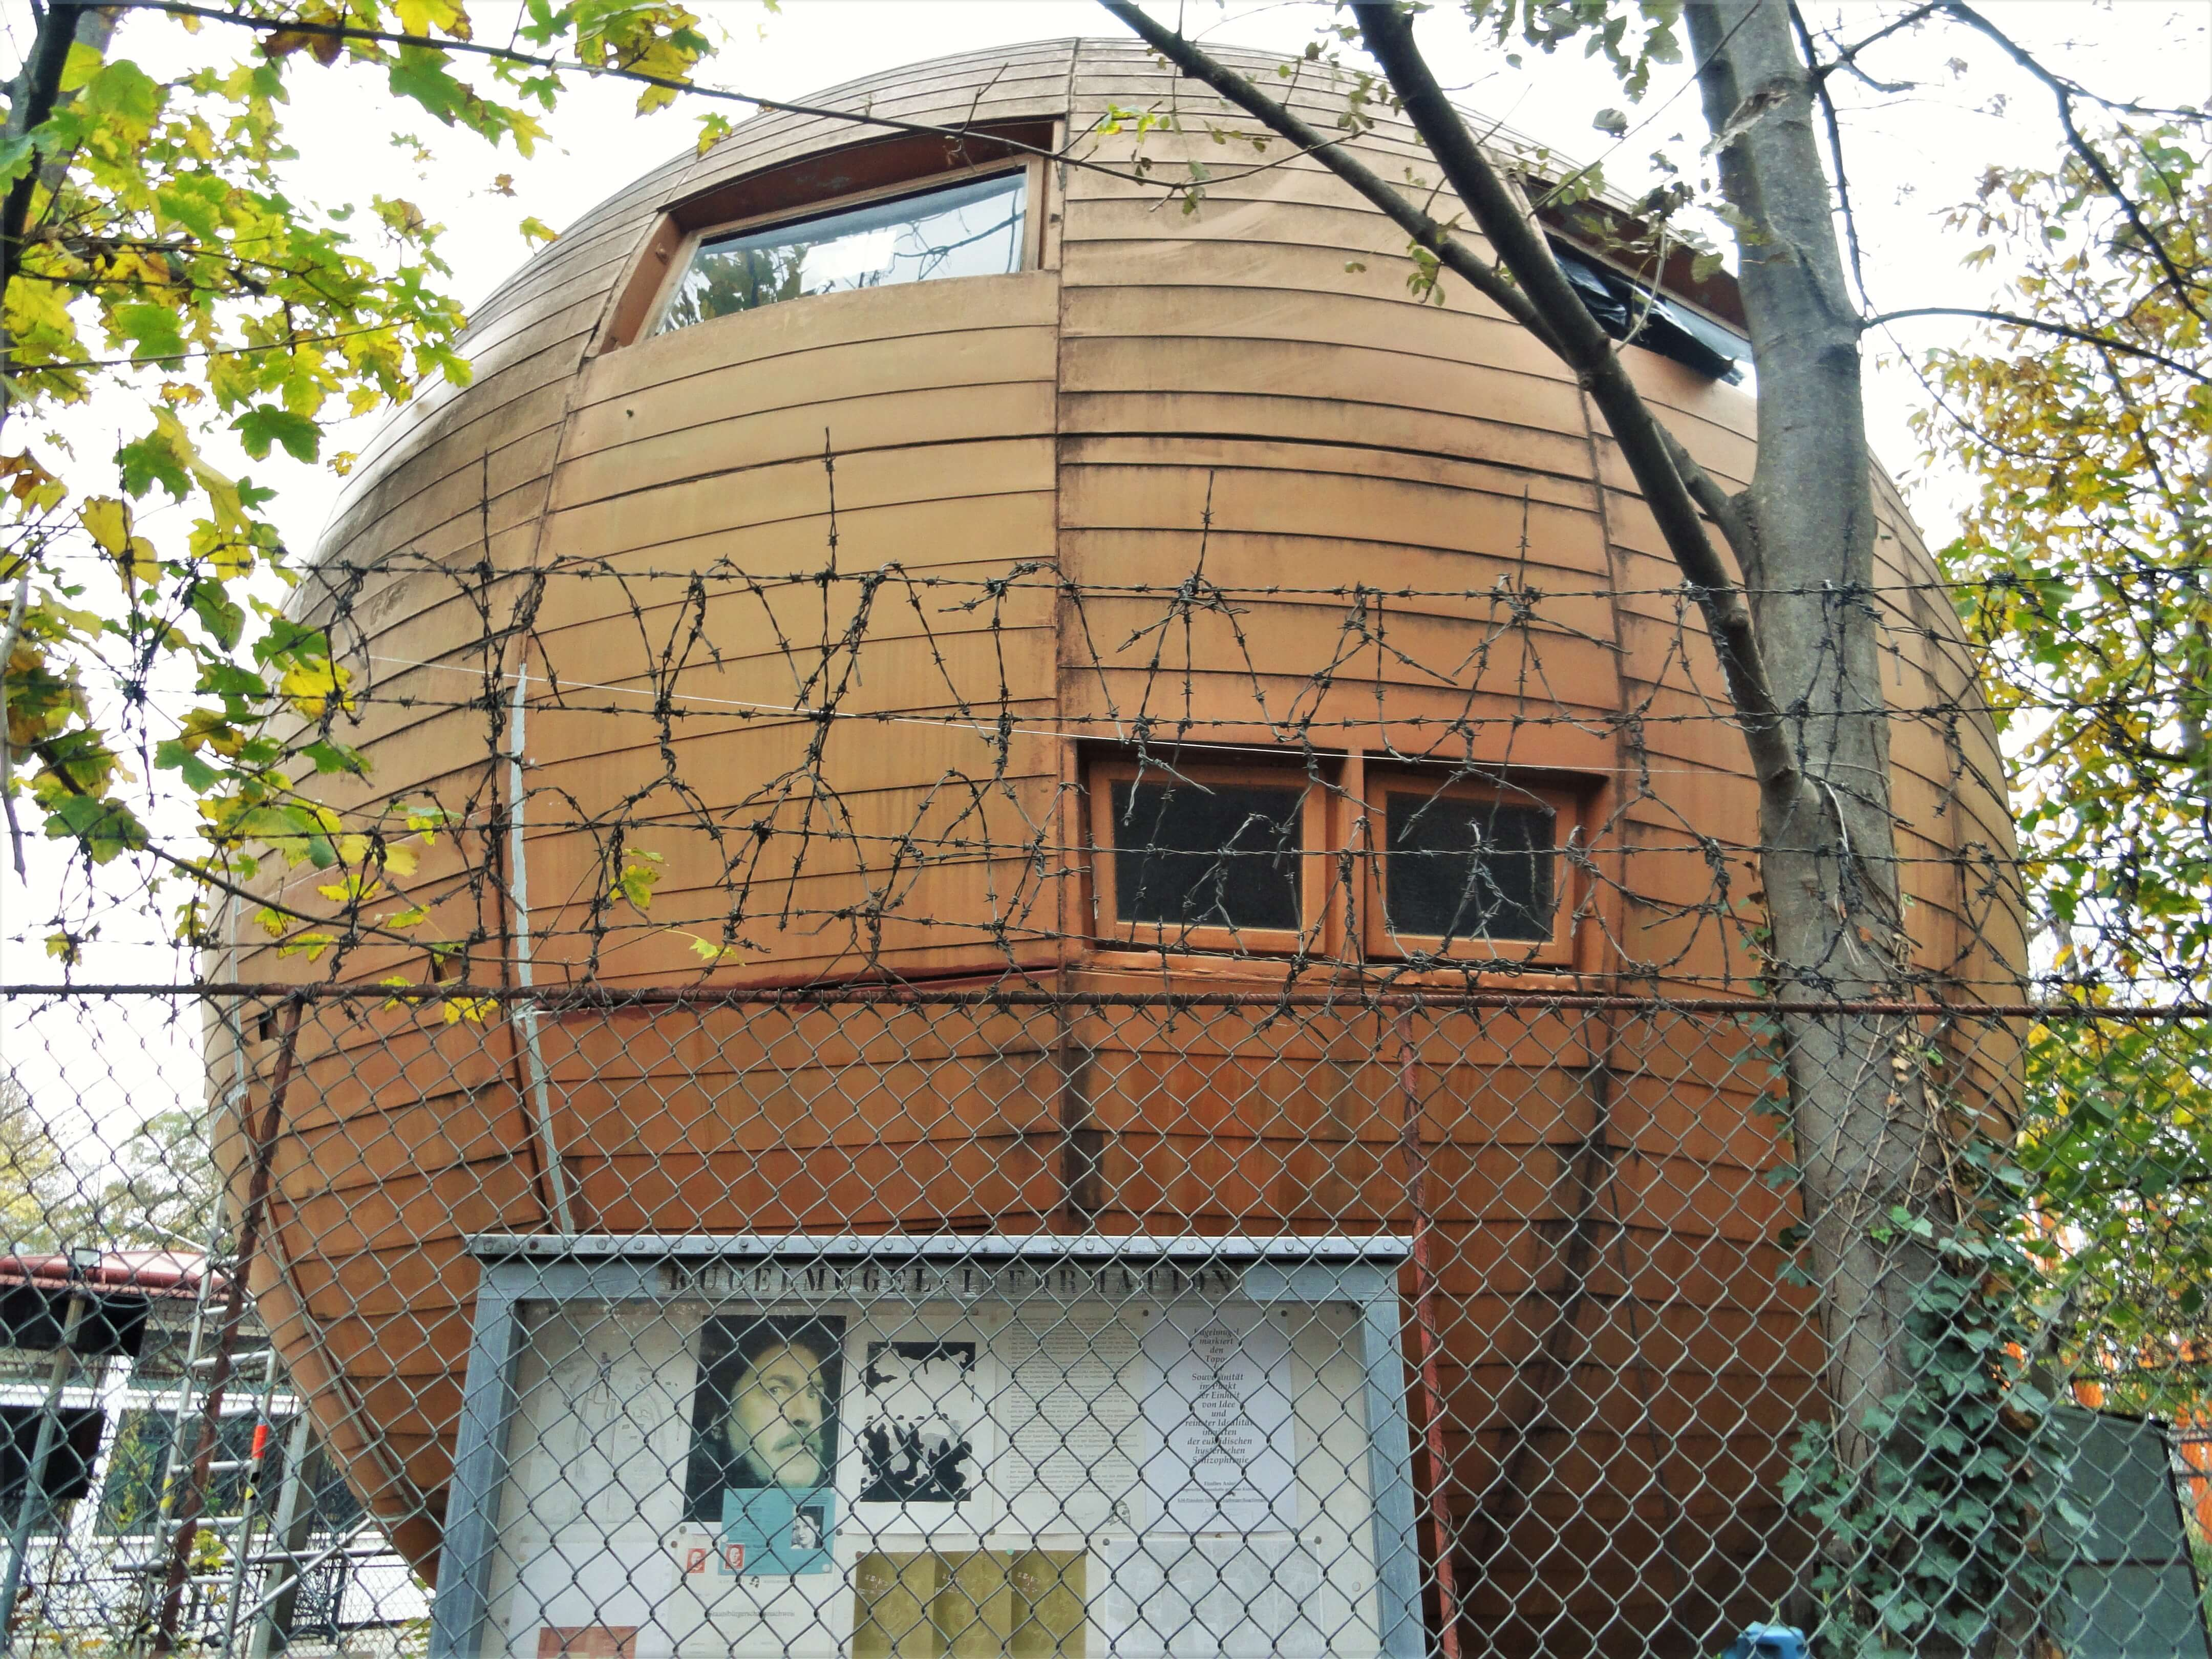 Kugelmugel round house in Vienna Prater Entertainment Park